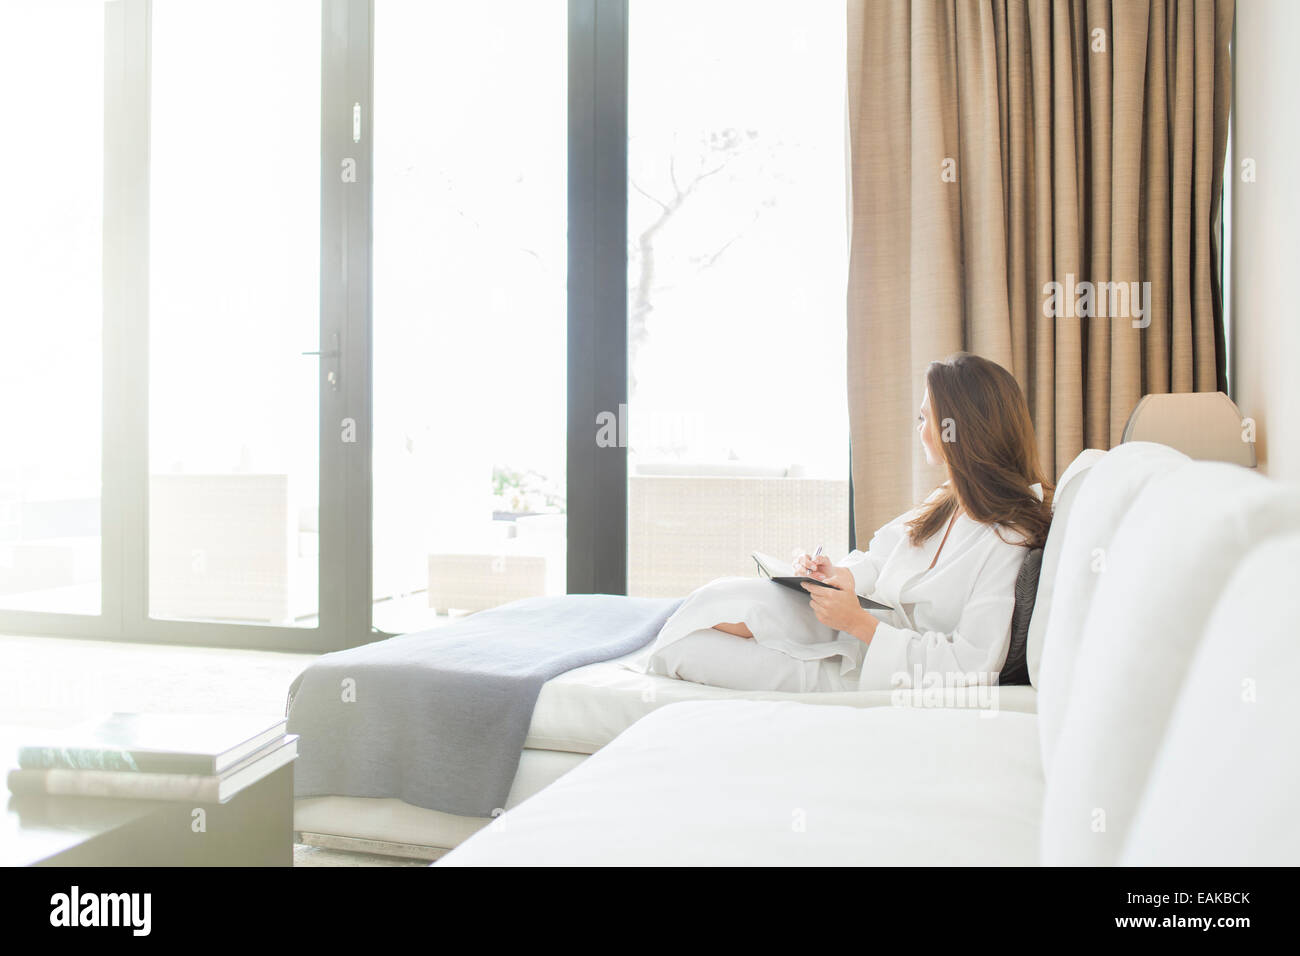 Woman wearing white bathrobe reclining on sofa in living room and looking through window - Stock Image